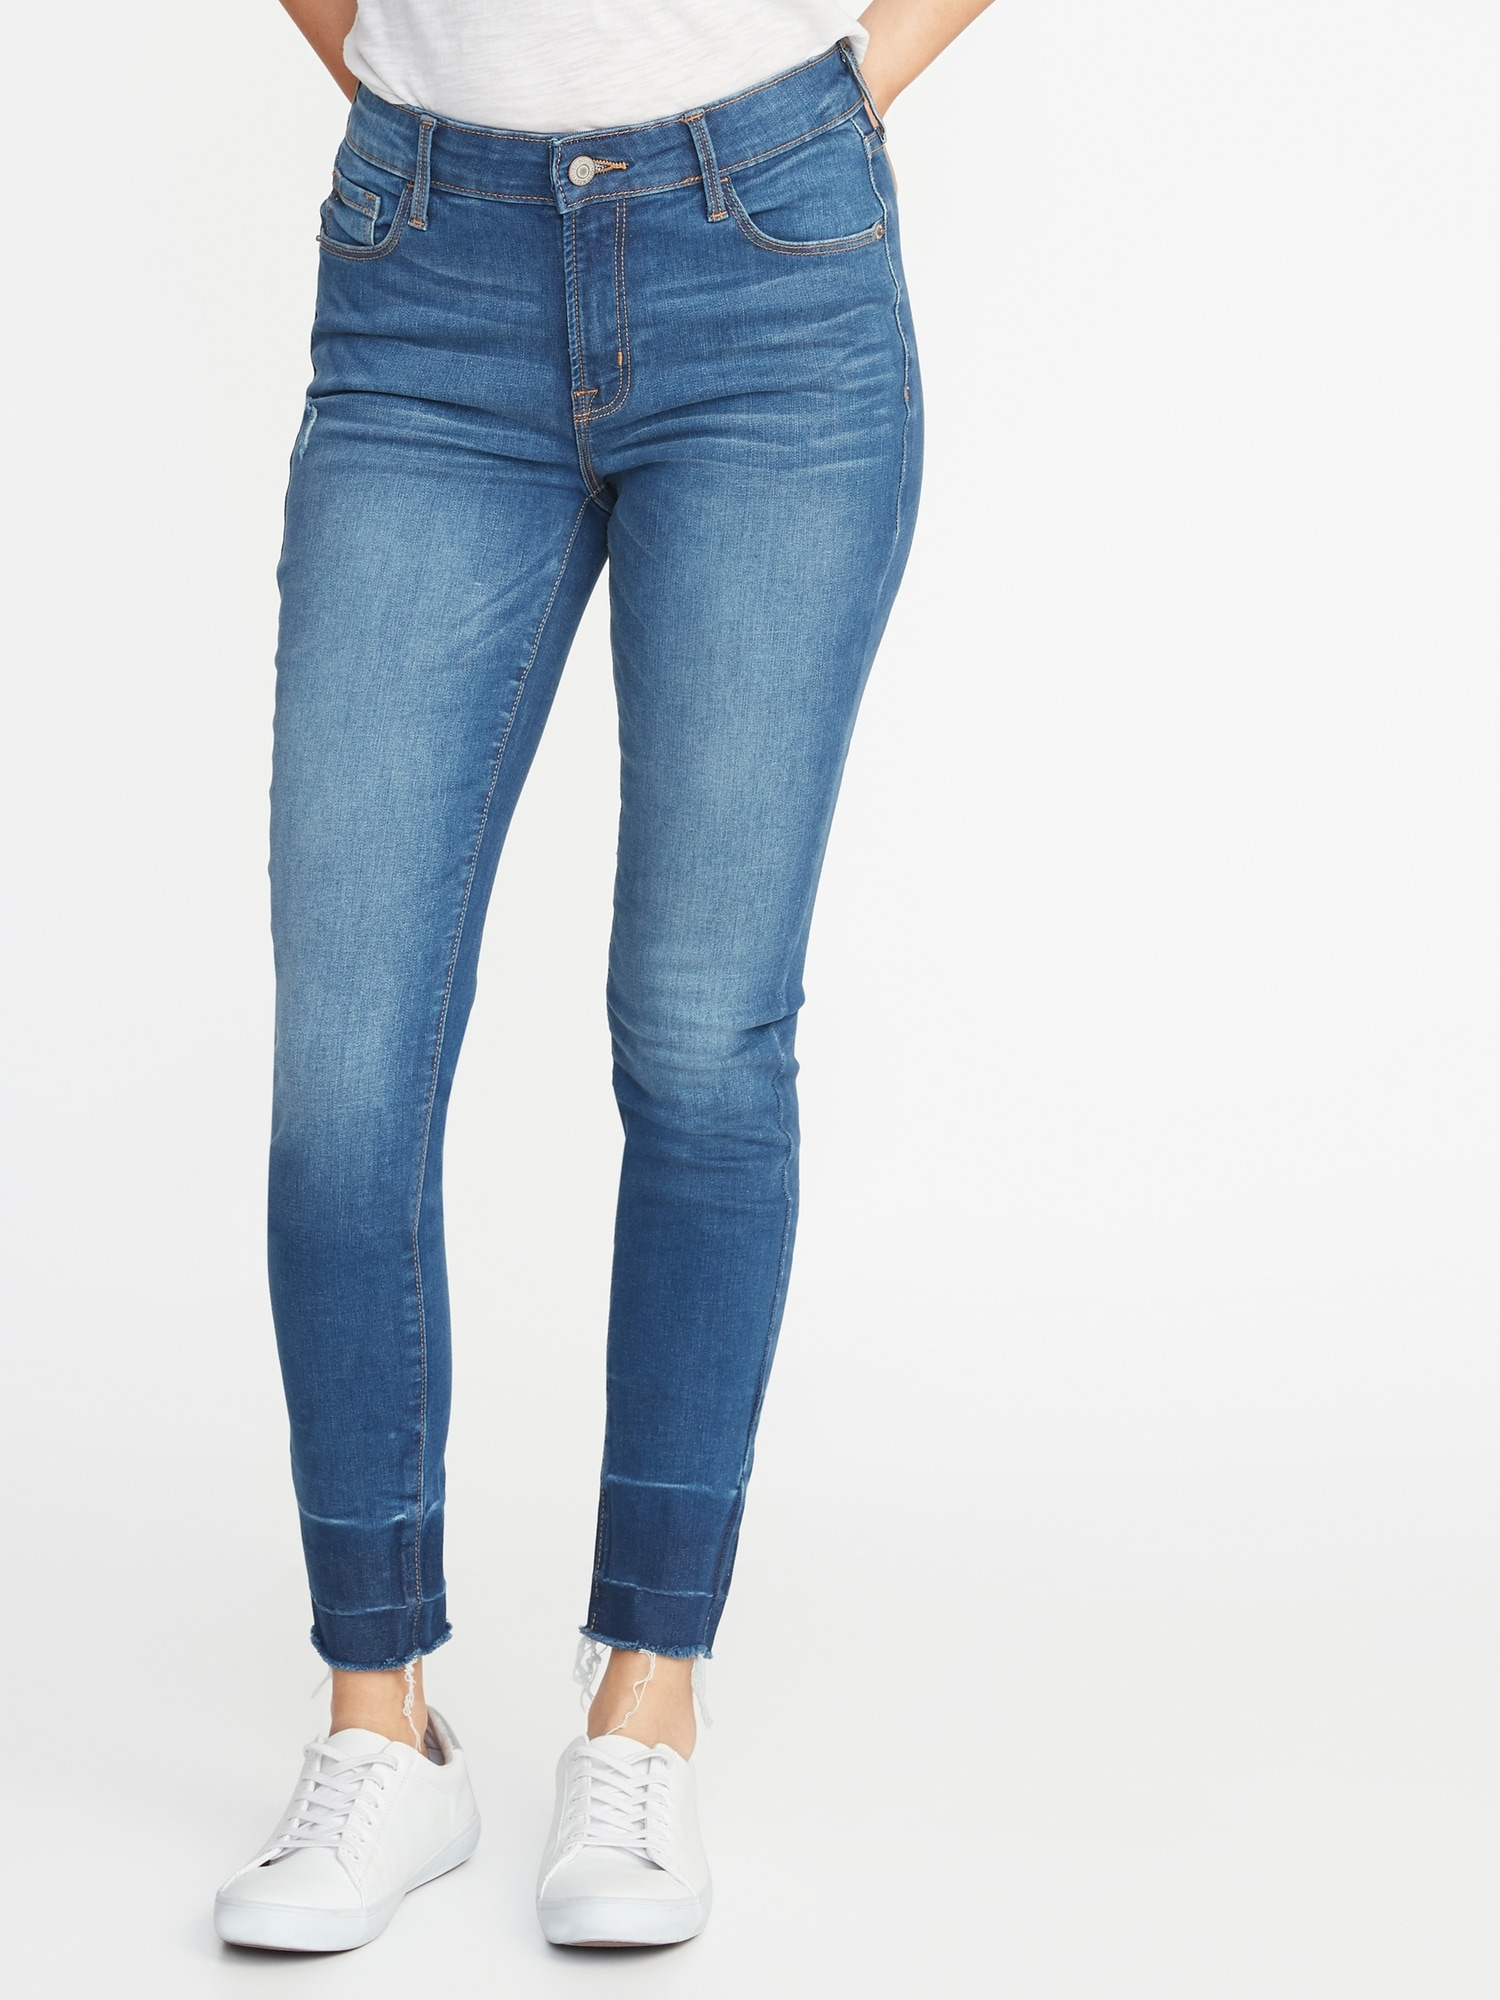 c765fe3f59f Mid-Rise Built-In Sculpt Released-Hem Rockstar Jeans for Women